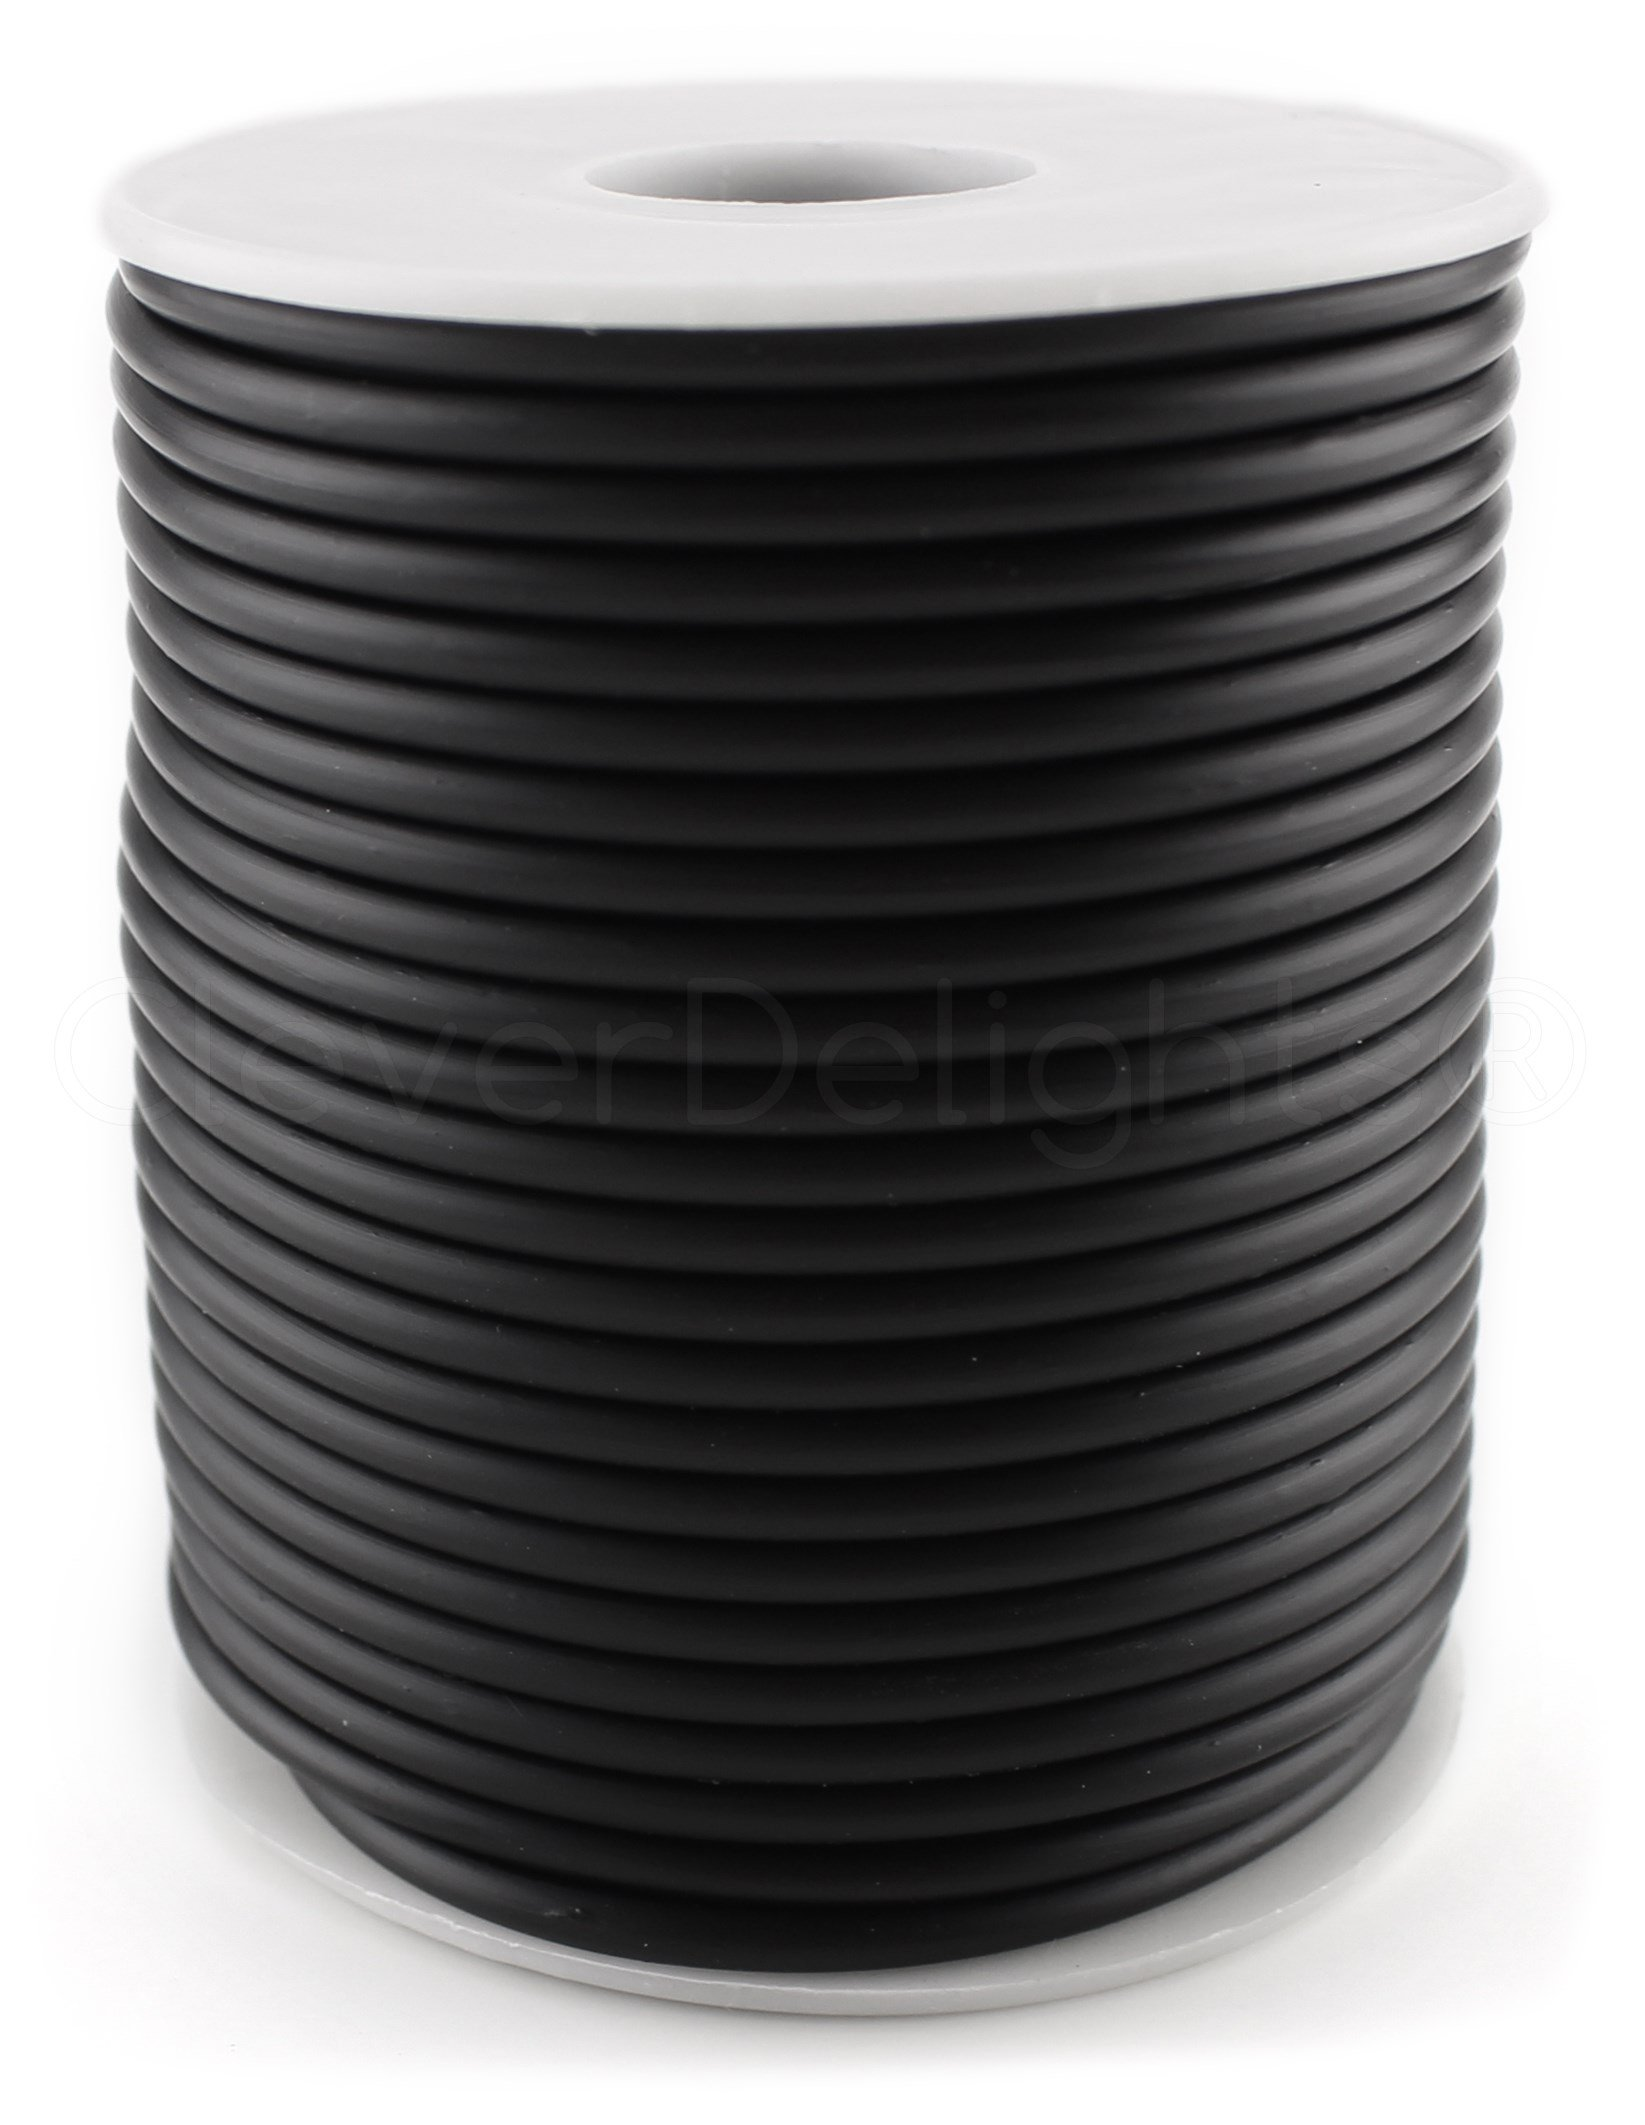 CleverDelights Black Hollow Rubber Tubing - 150 Feet - 3mm Diameter Tube Cord - 3/32'' OD x 1/32'' ID by CleverDelights